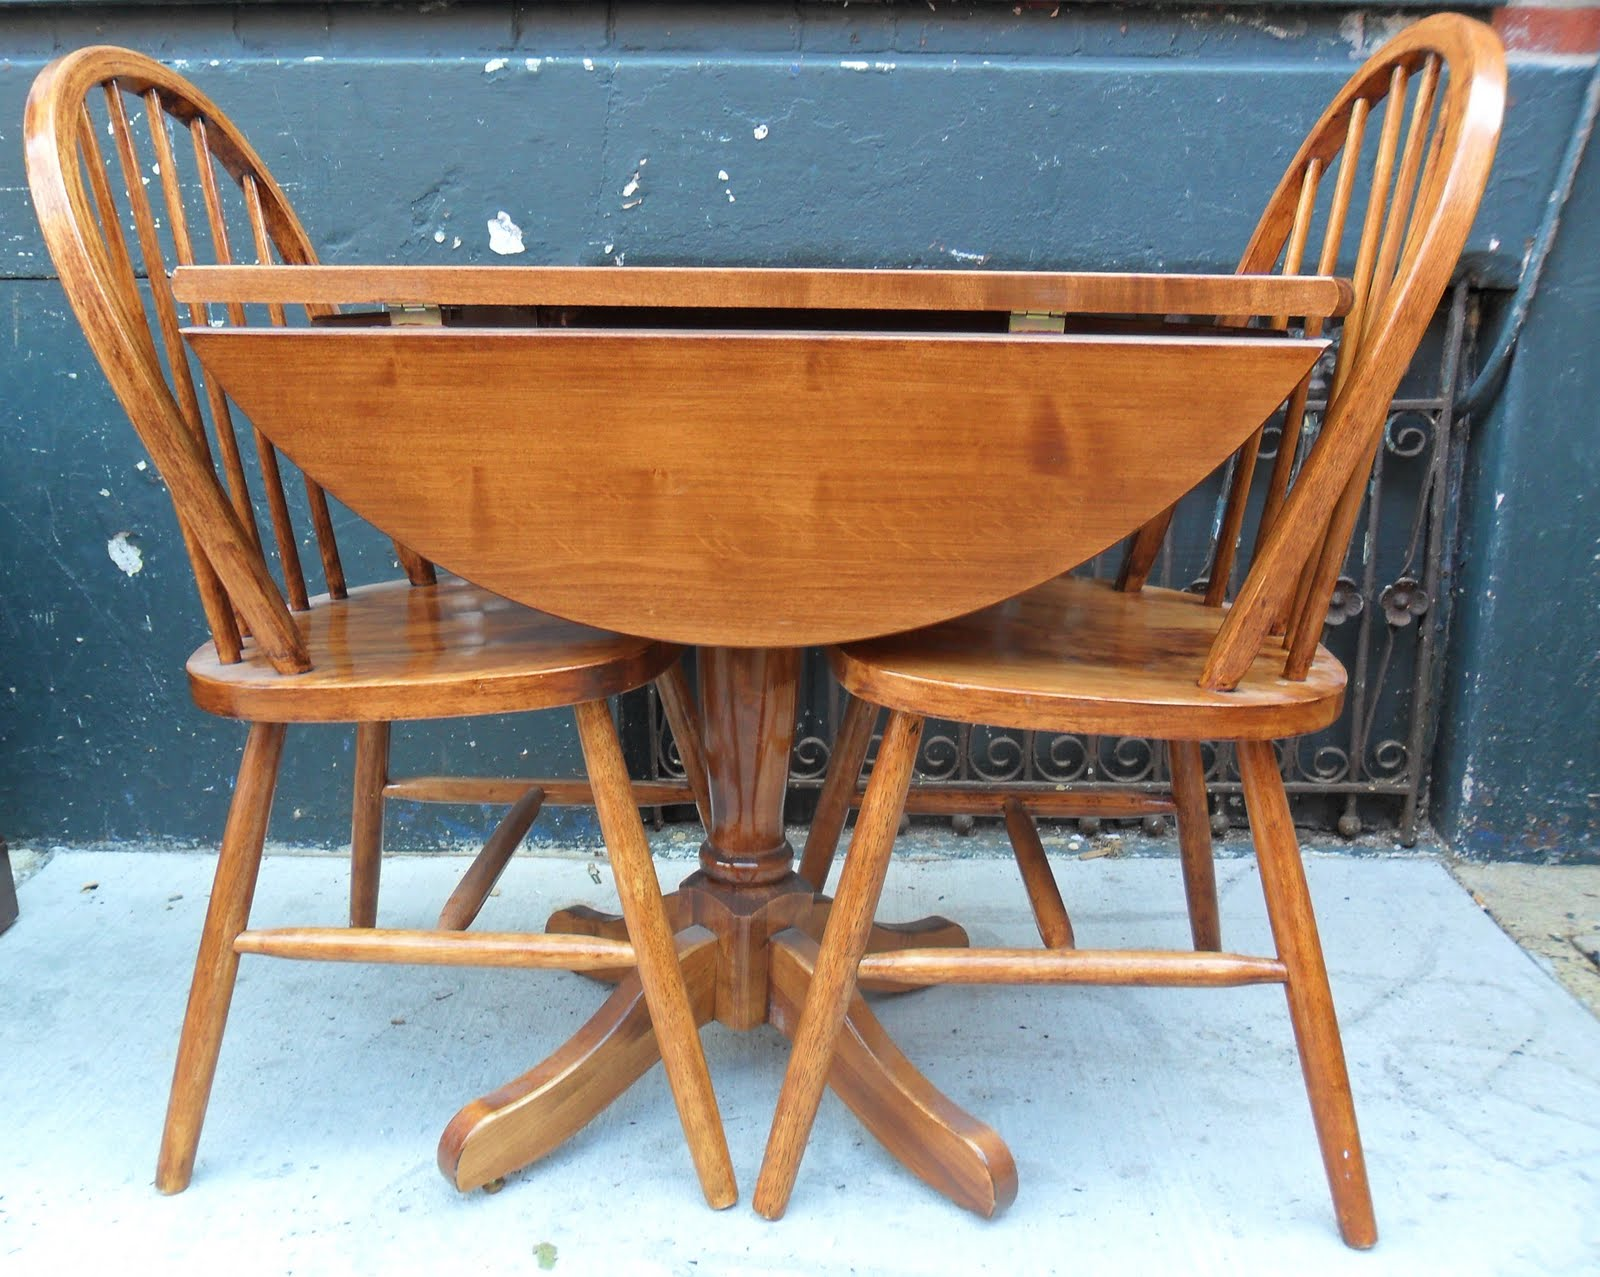 Uhuru Furniture & Collectibles: Drop Leaf Table & 2 Chairs ...